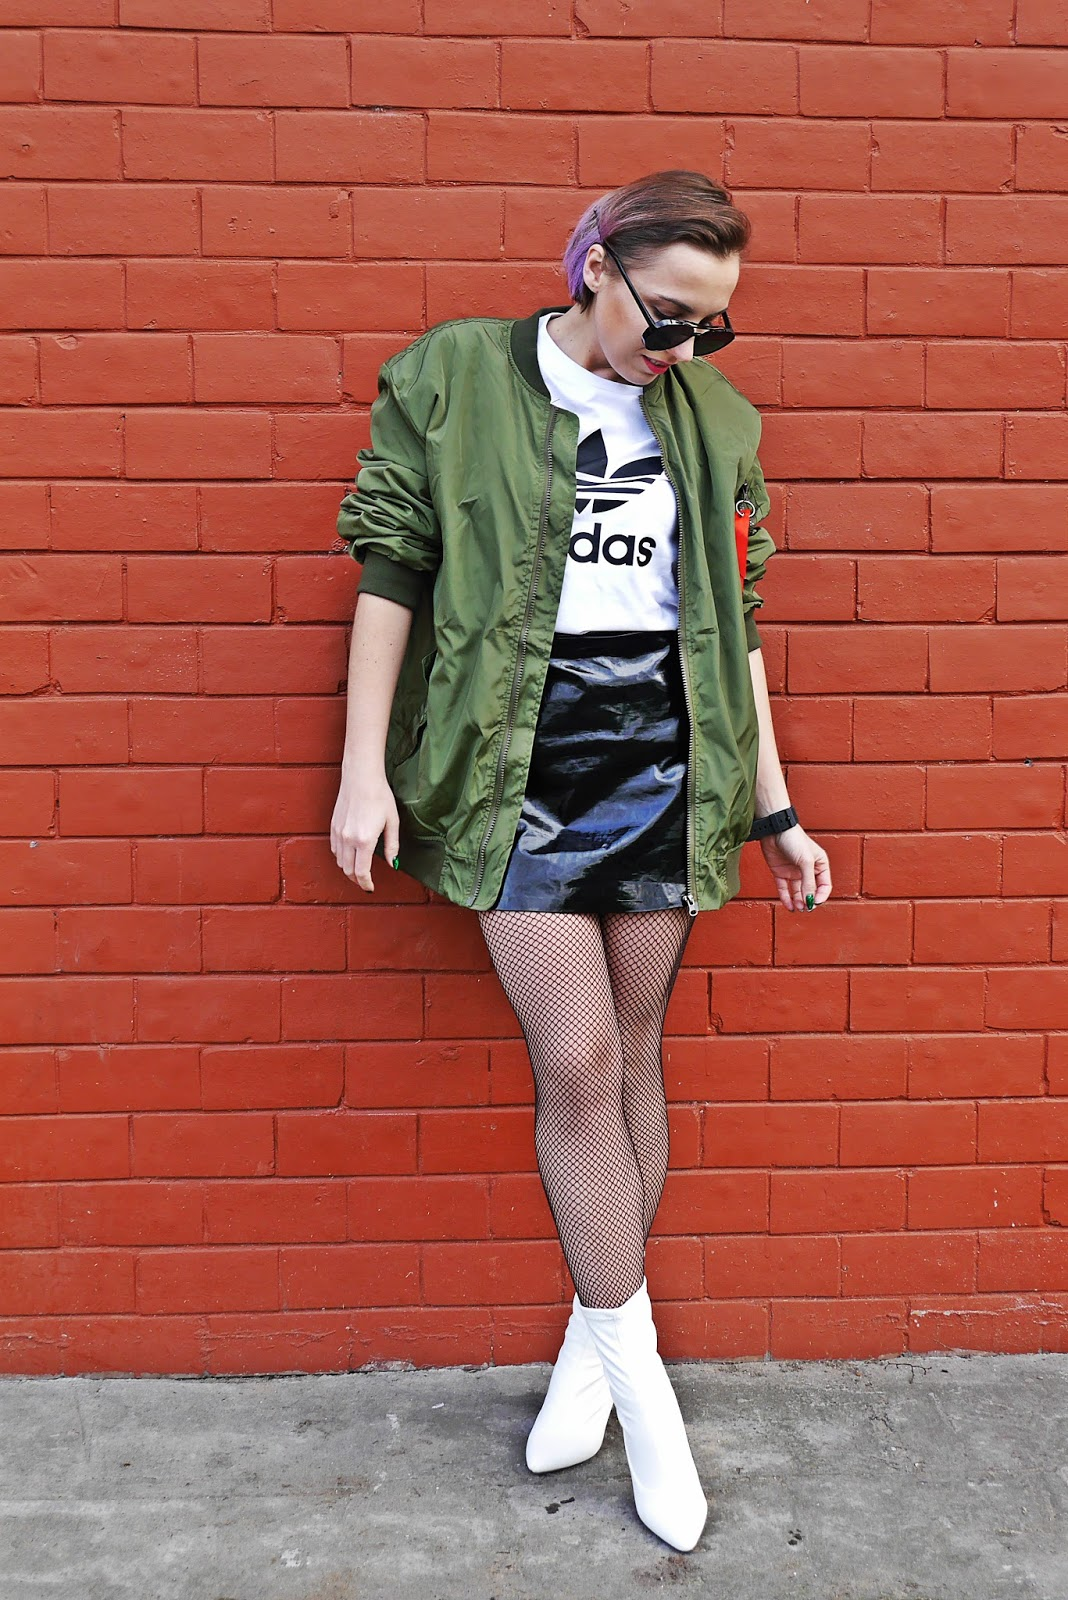 5_oversize_green_bomber_jacet_white_boots_adidas_tshirt_karyn_blog_modowy_080318a